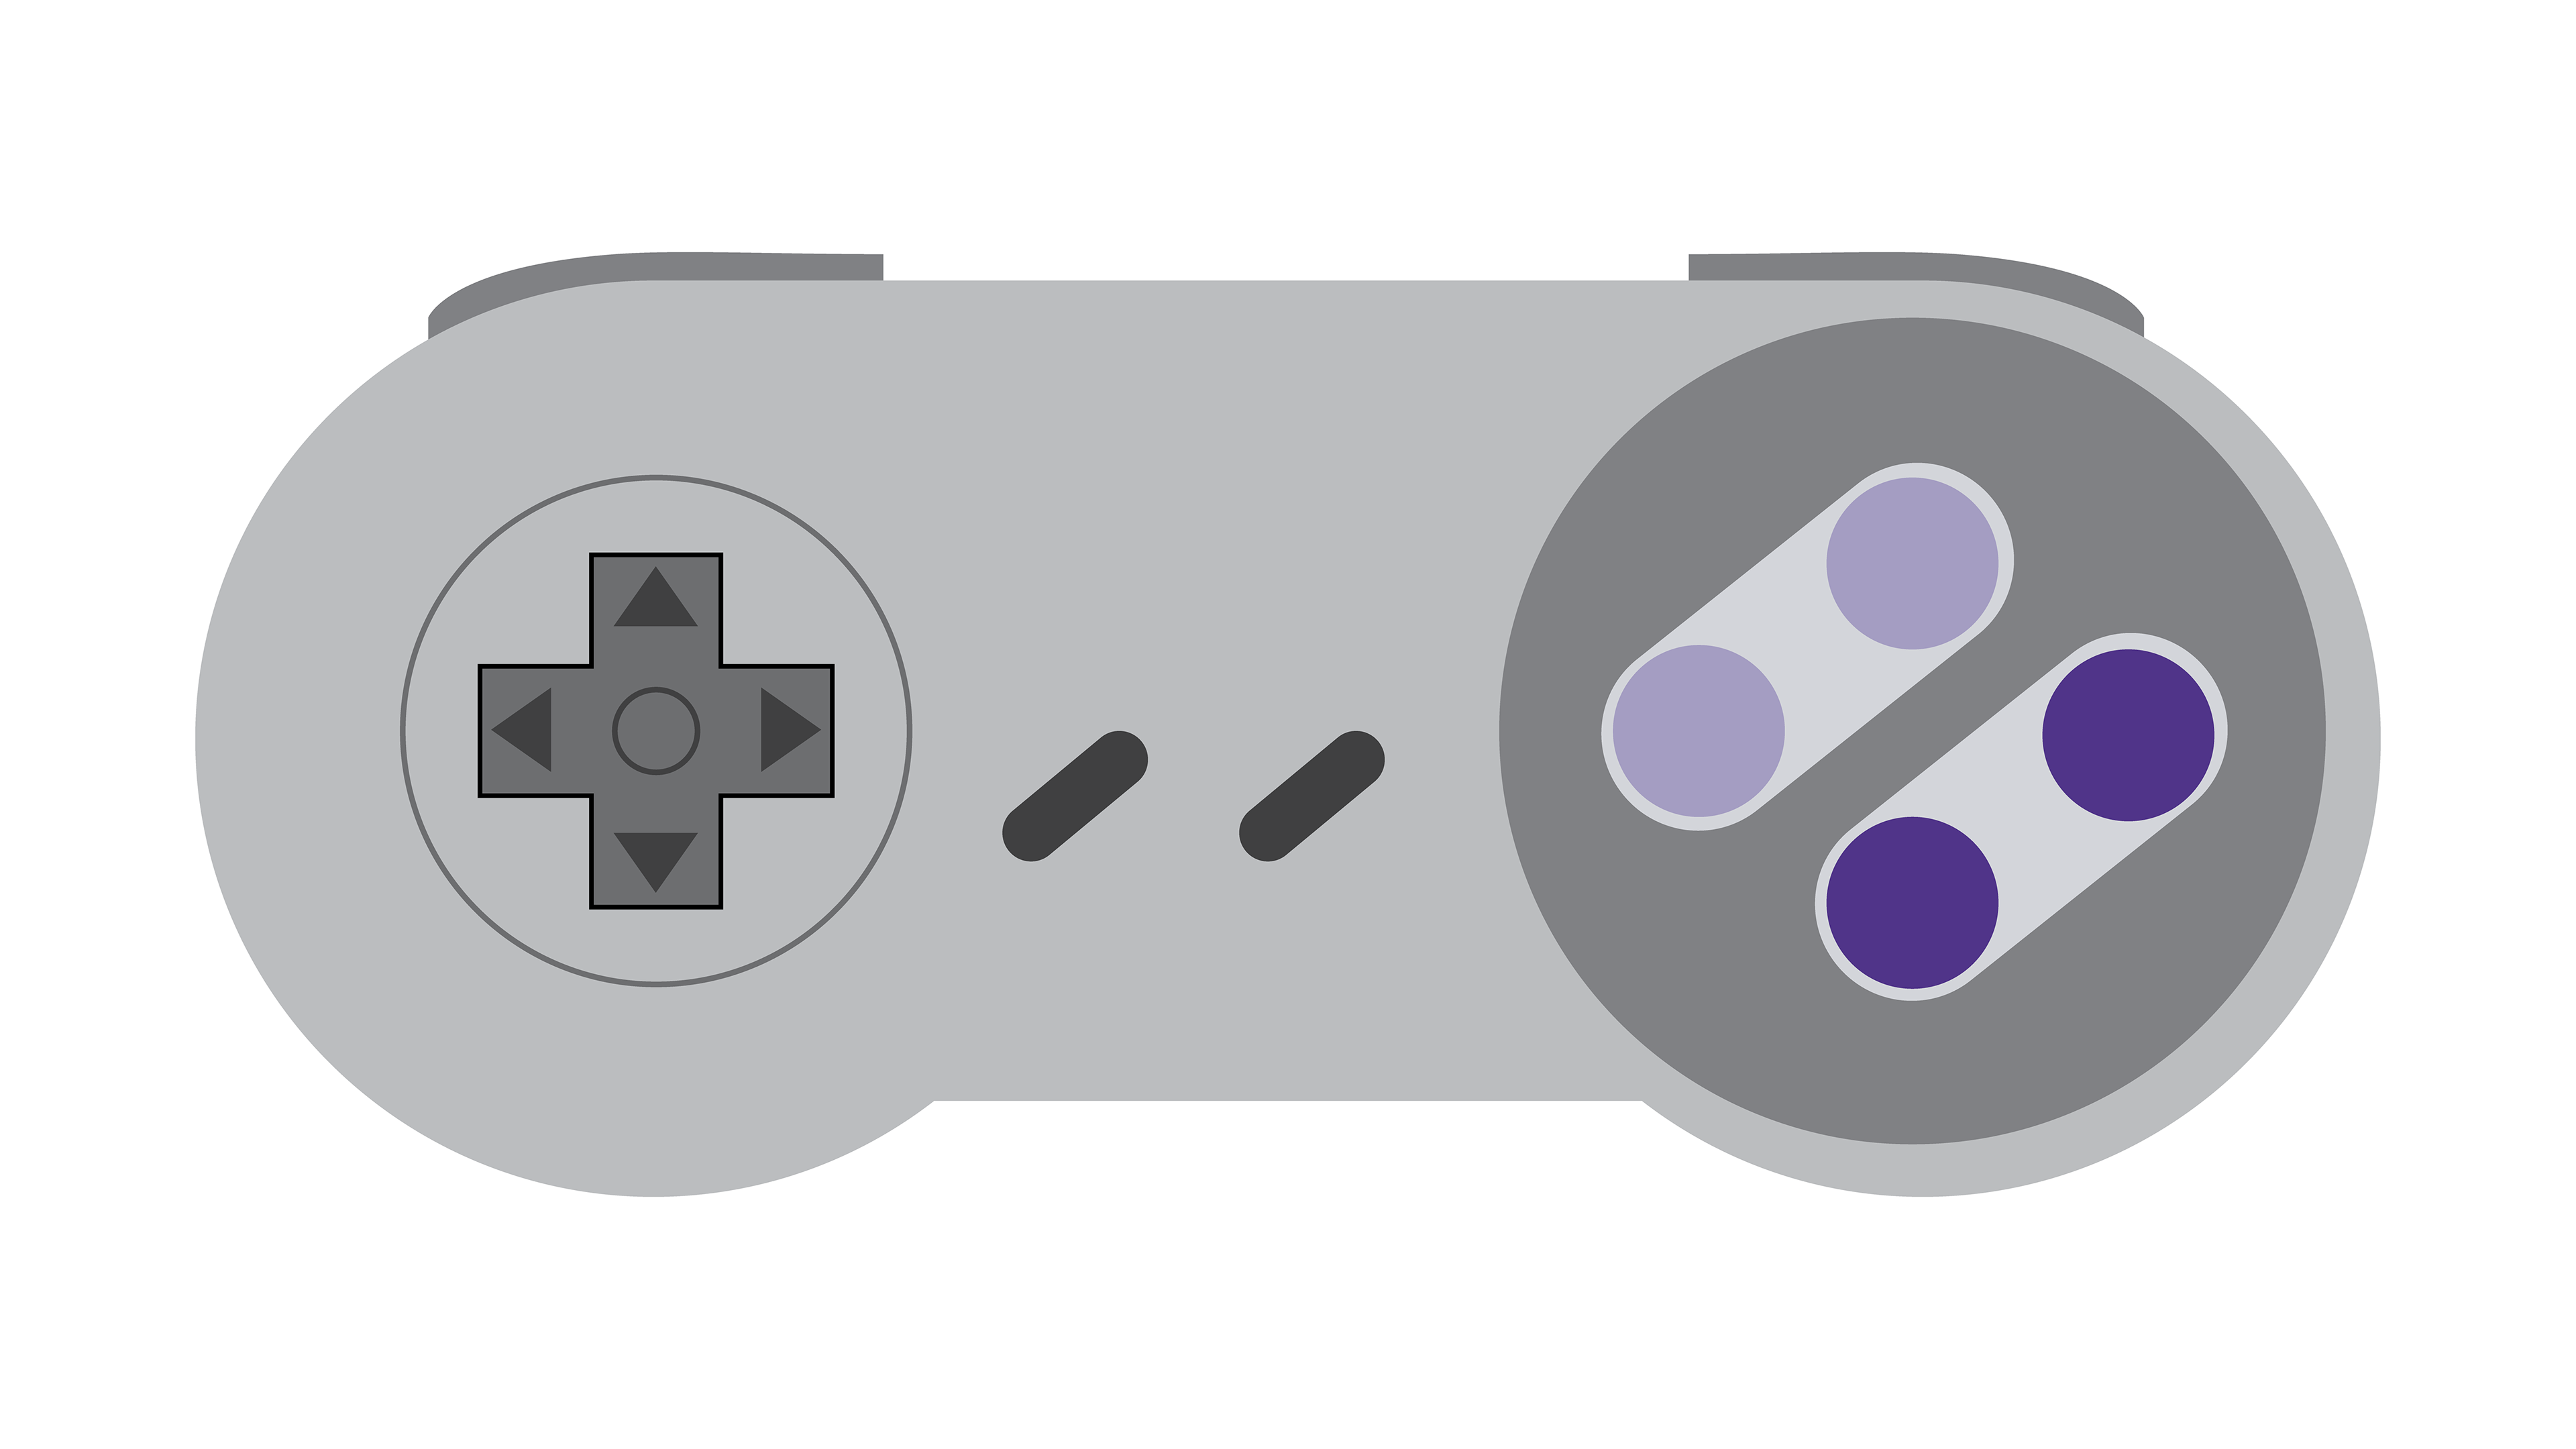 Nes Controller Vector at GetDrawings com | Free for personal